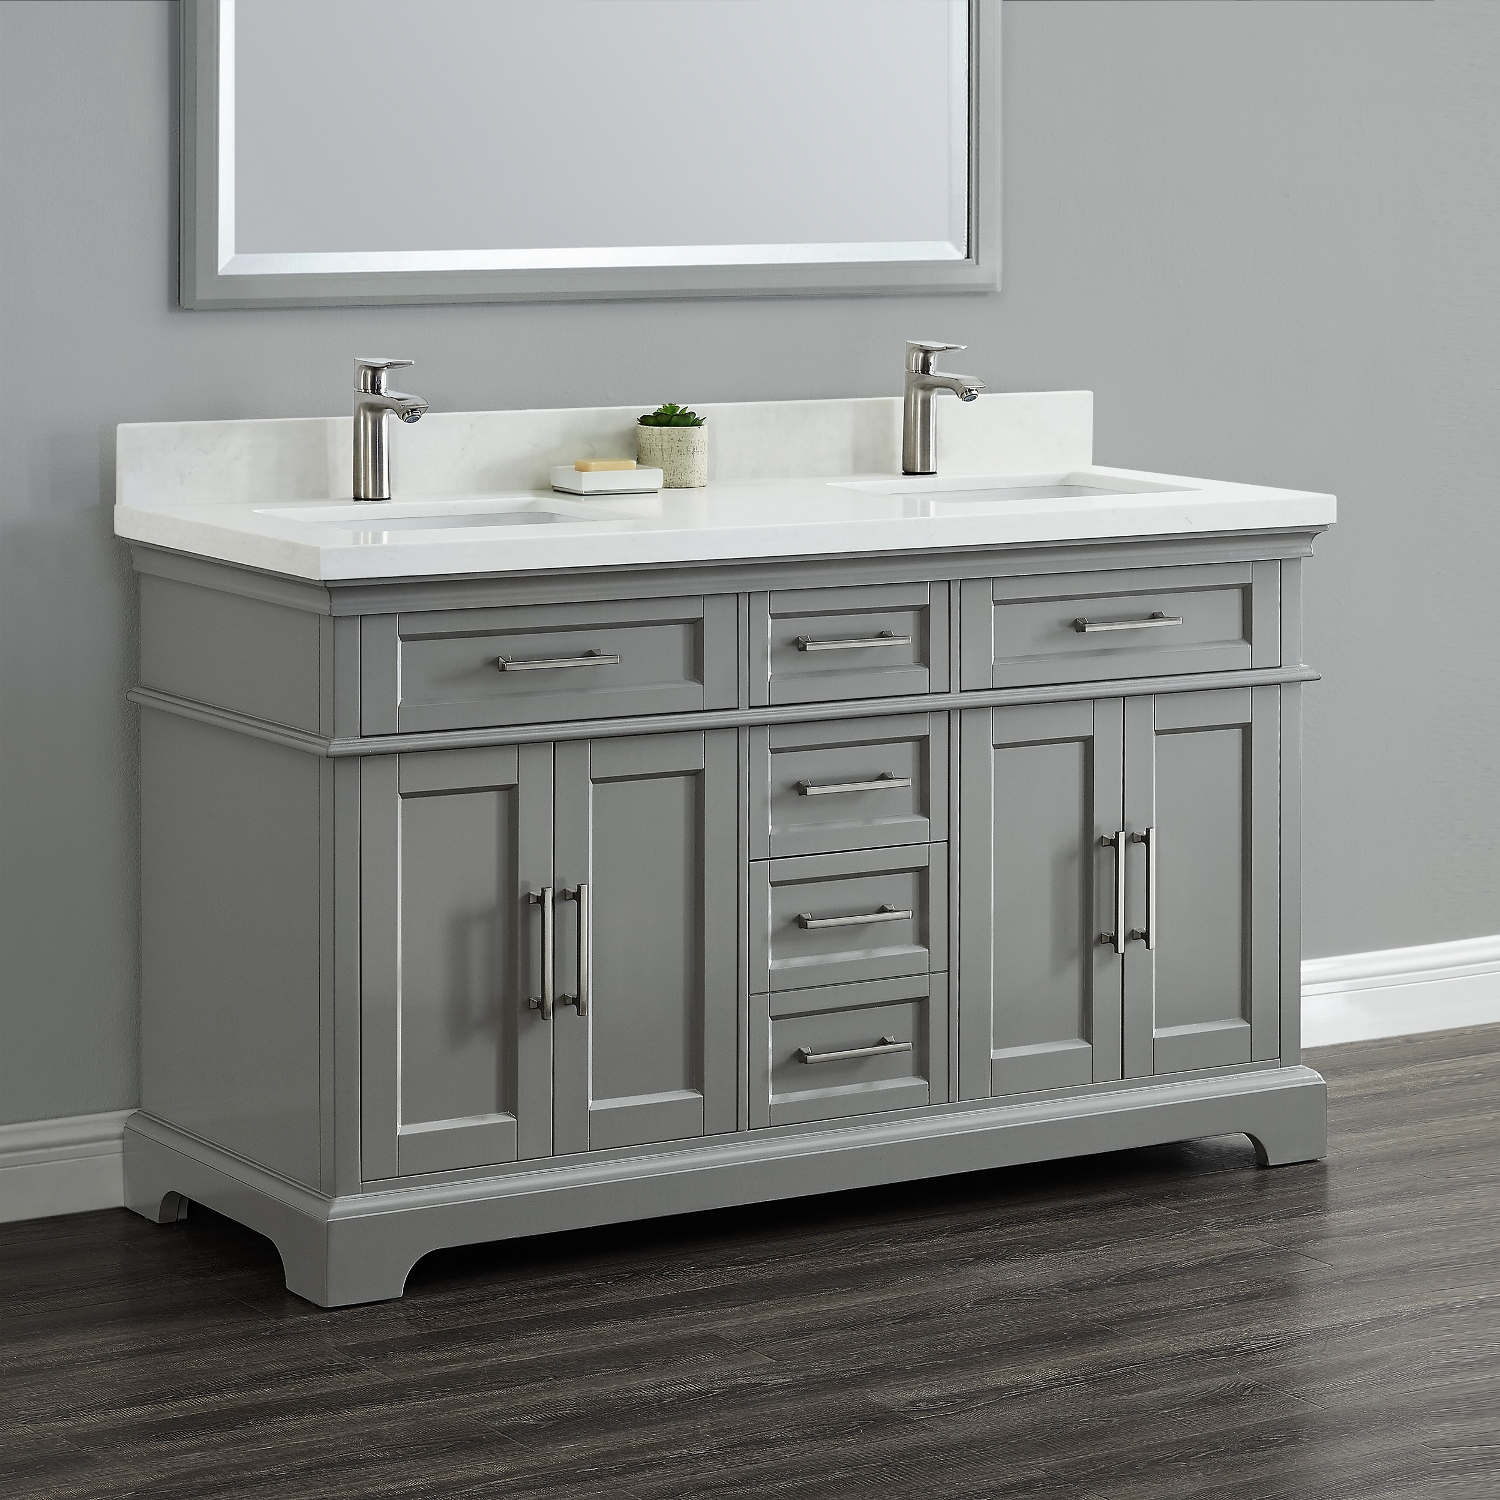 sink vanity cabinet itm vanities w vessel top double bathroom modern floating marble